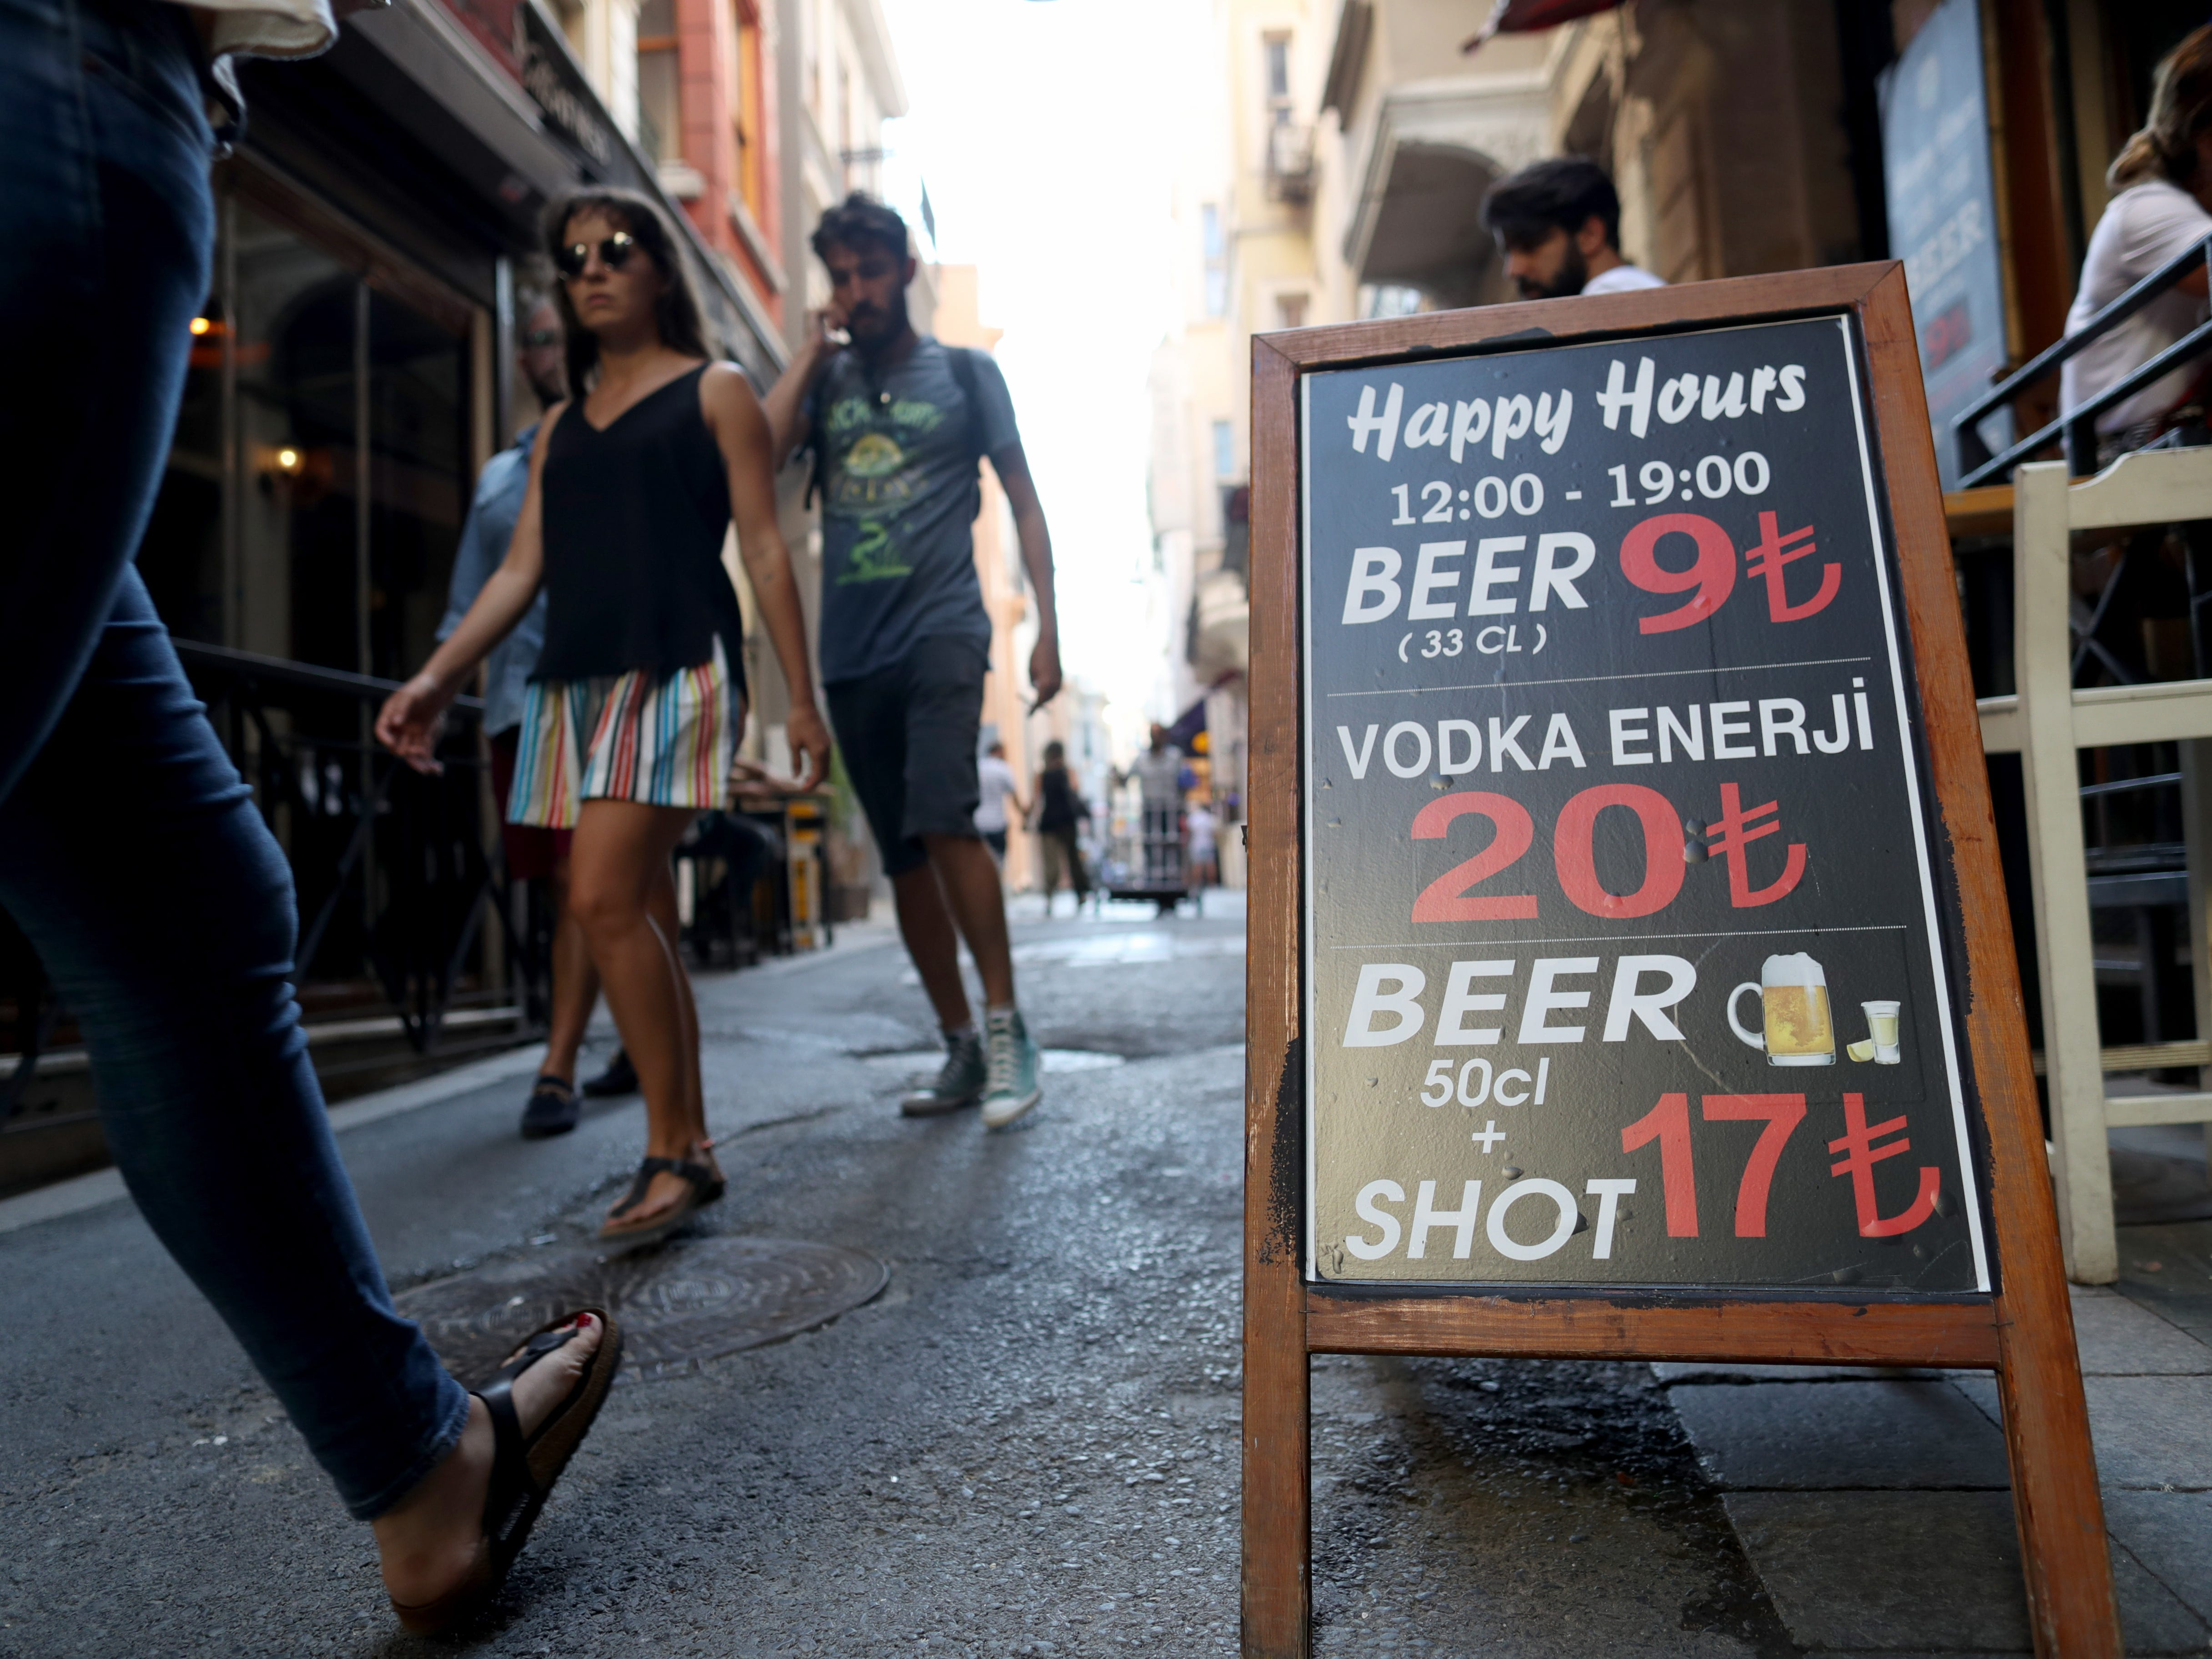 People walk near a pub in Istanbul, Aug. 15, 2018. The Turkish lira has nosedived in value in the past week, but some Turks are reacting with defiance to their plunging currency and an escalating trade and political dispute with the United States.